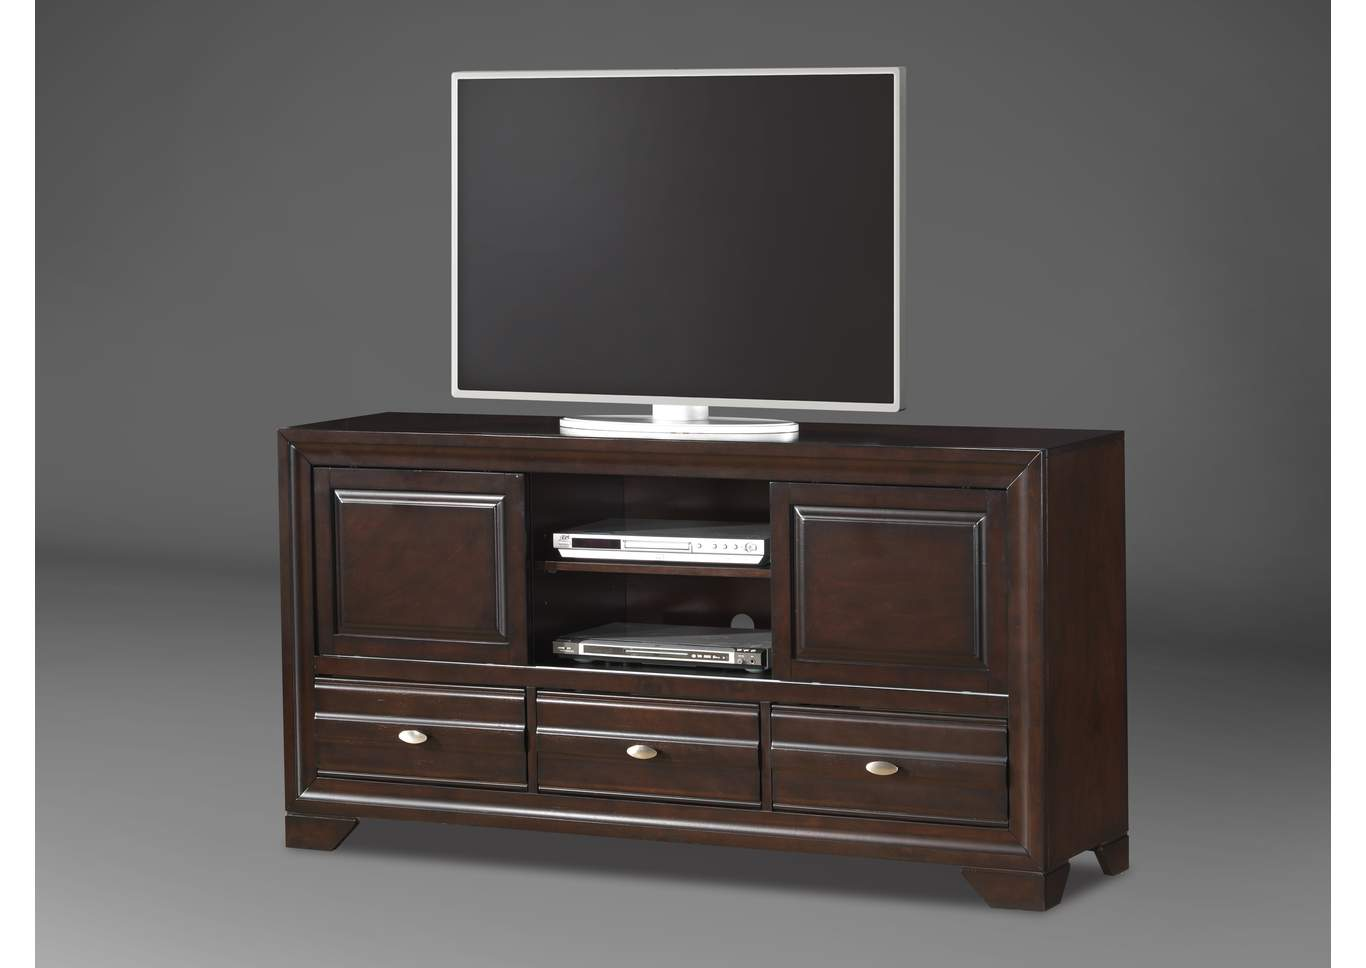 Stella Stella Tv Stand,Crown Mark